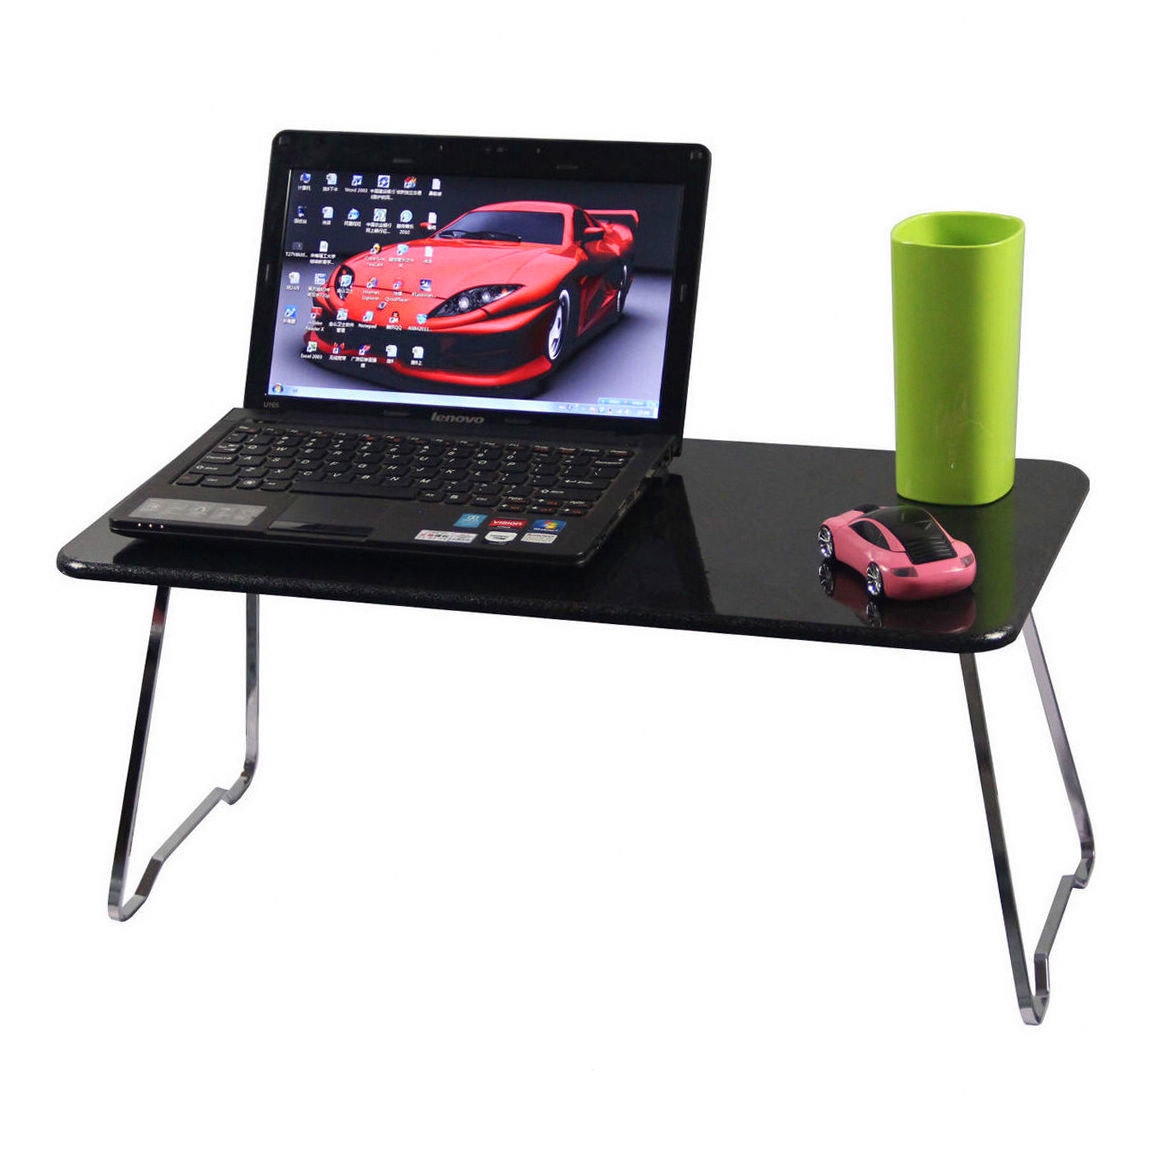 15 Inch Multi-color Bed Computer Desk Notebook Computer Desk Bed Folding Table Bed Student Table